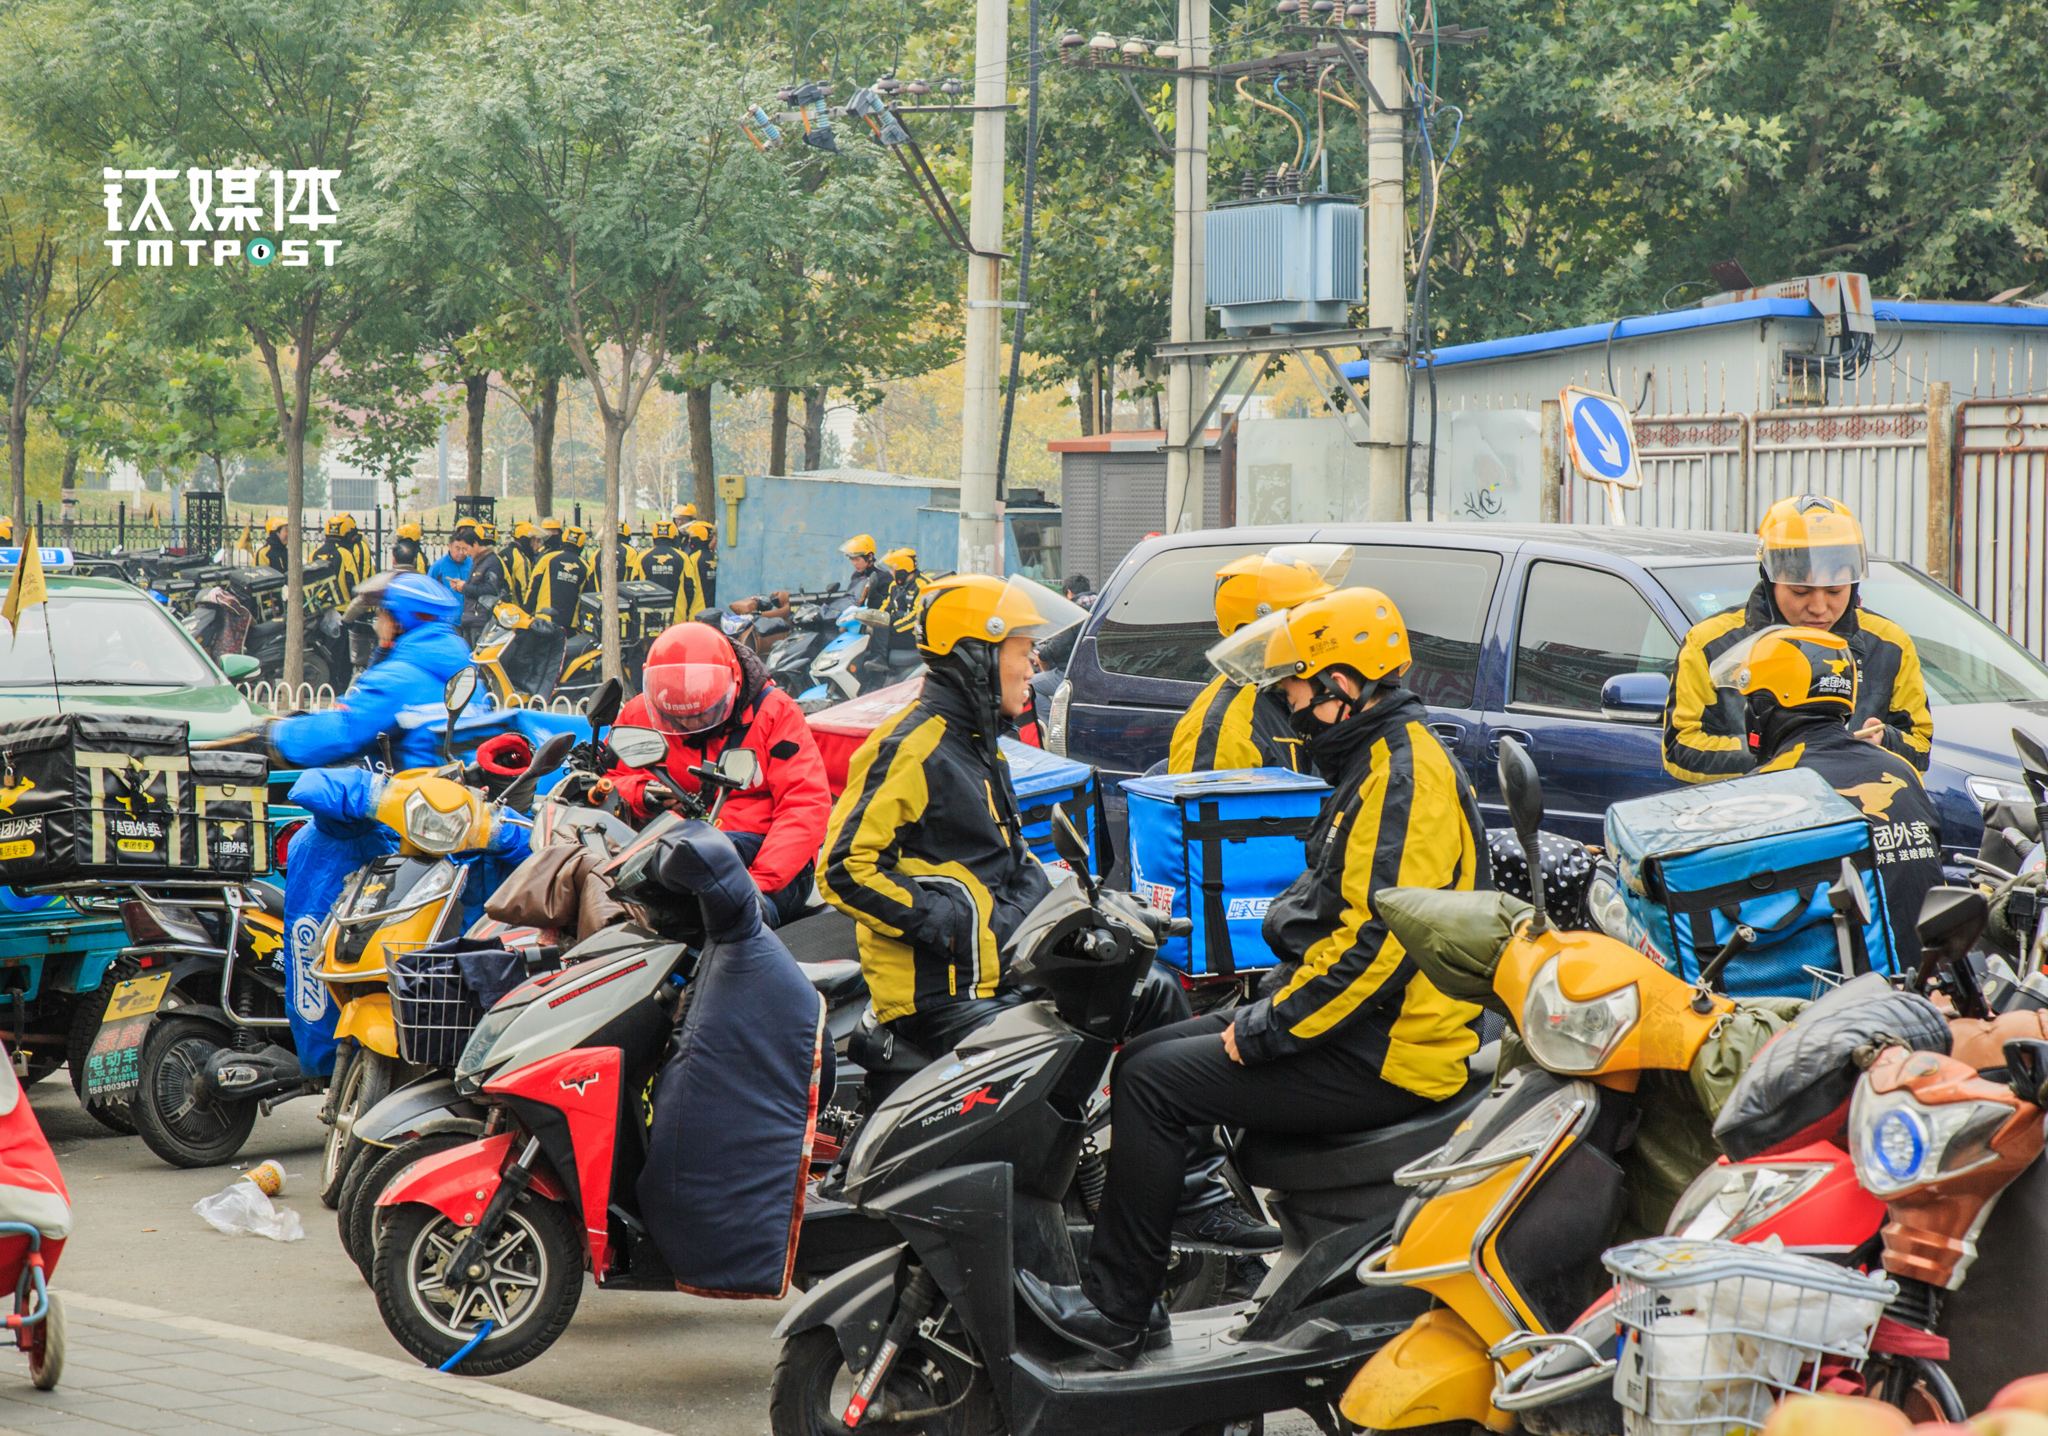 On November 9th 2016, 9 am, at Beijing Jiulongshan, takeout delivery guys from different takeout platforms gathered on the street, waiting for order request from their phones. Another day of work was about to start.